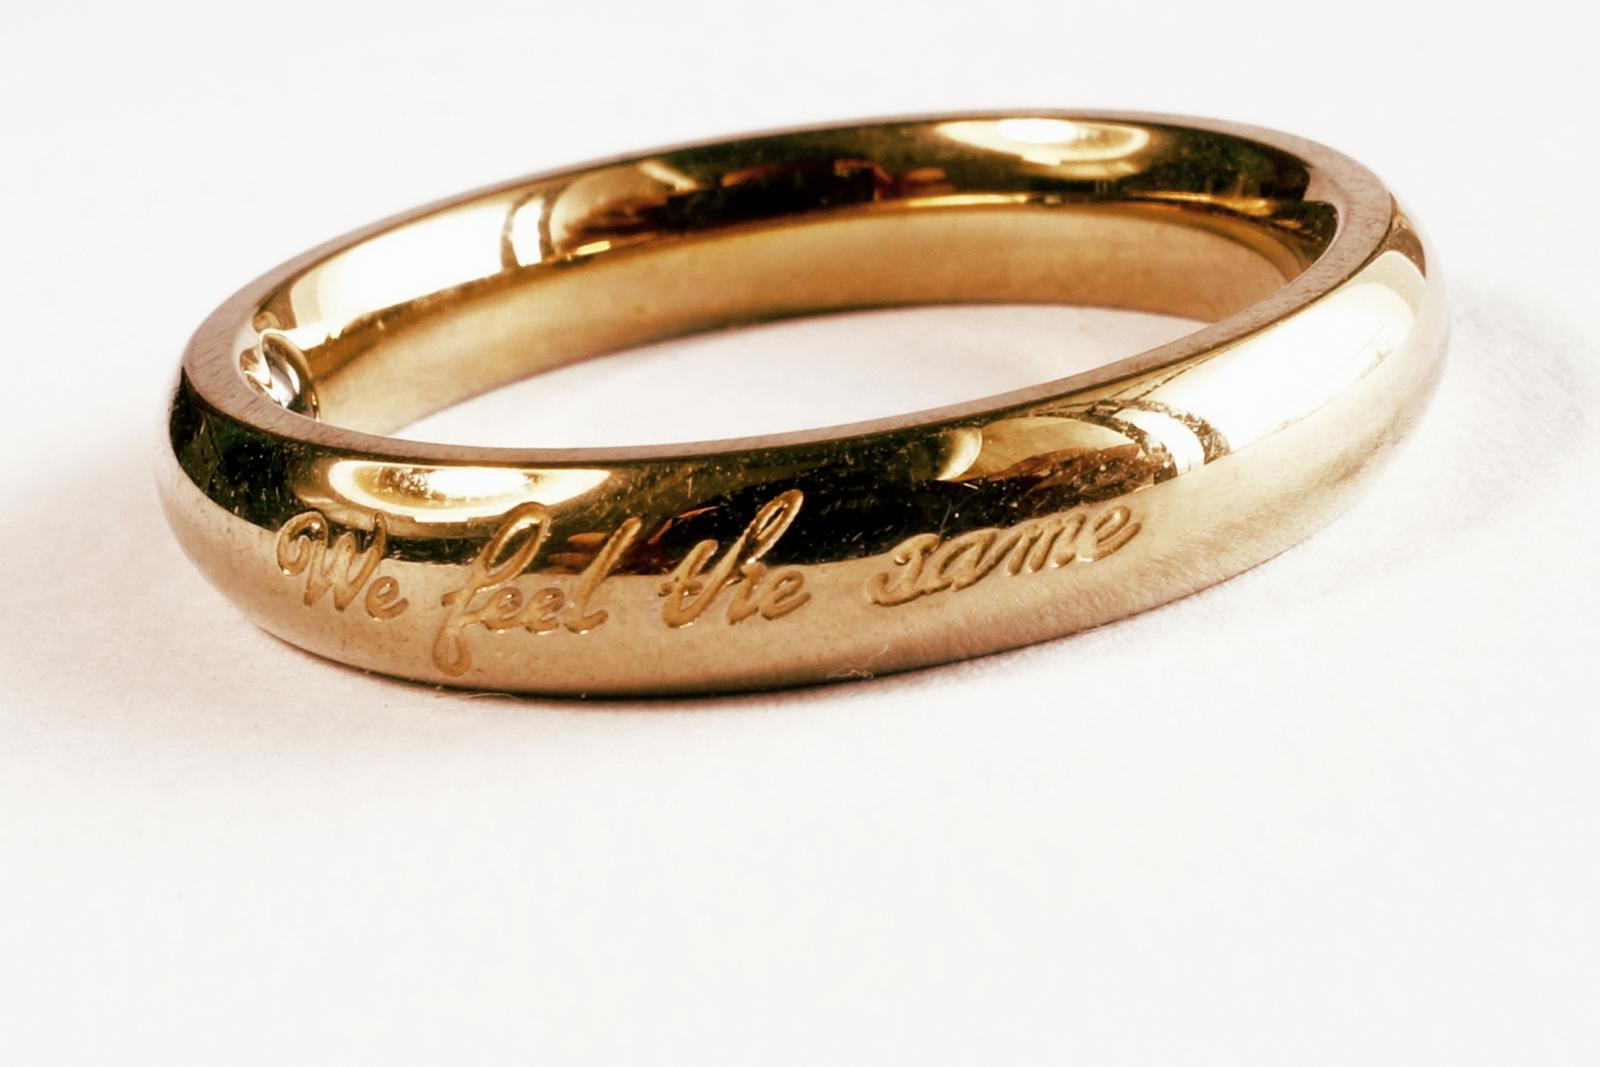 Wedding ring with inscription